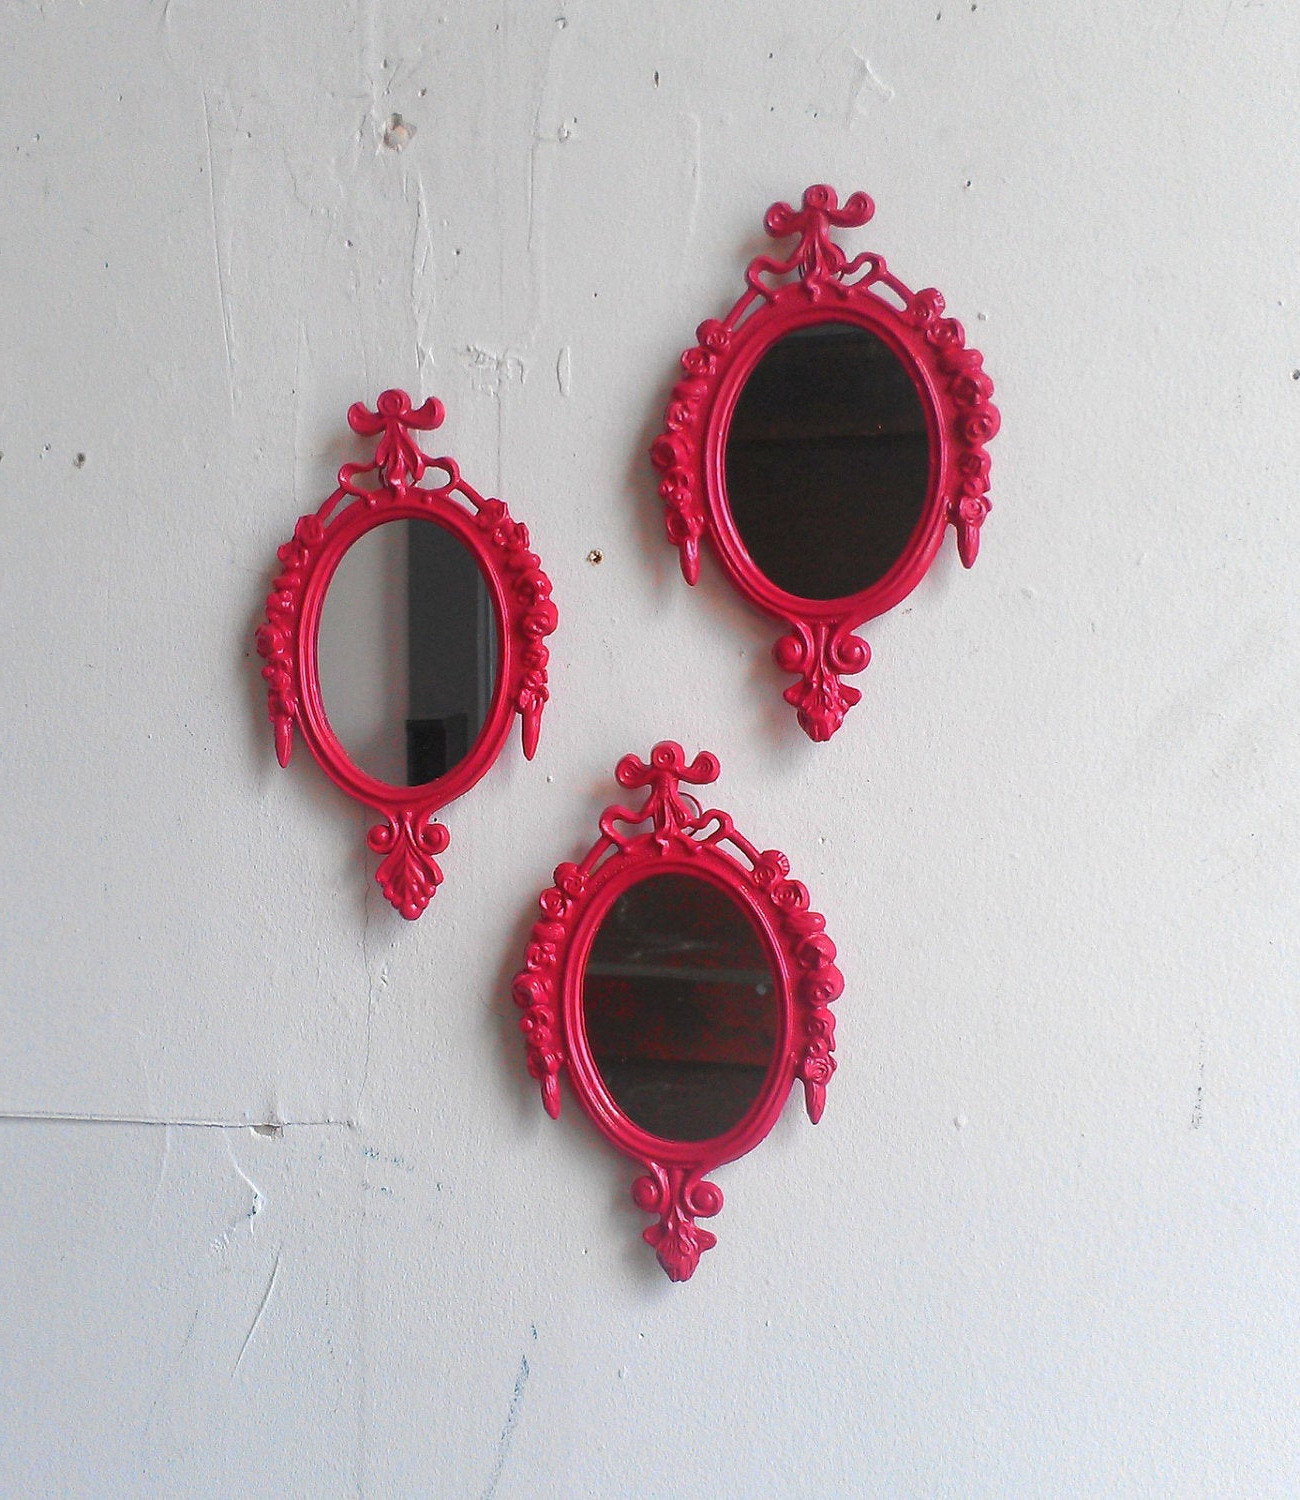 Preferred Girls Room Decor Mirror Set, Pink Nursery Wall Mirrors, Pink Baby Shower, Pink Wall Art, Colorful Decor Ideas, Boho Chic In Girls Pink Wall Mirrors (View 7 of 20)